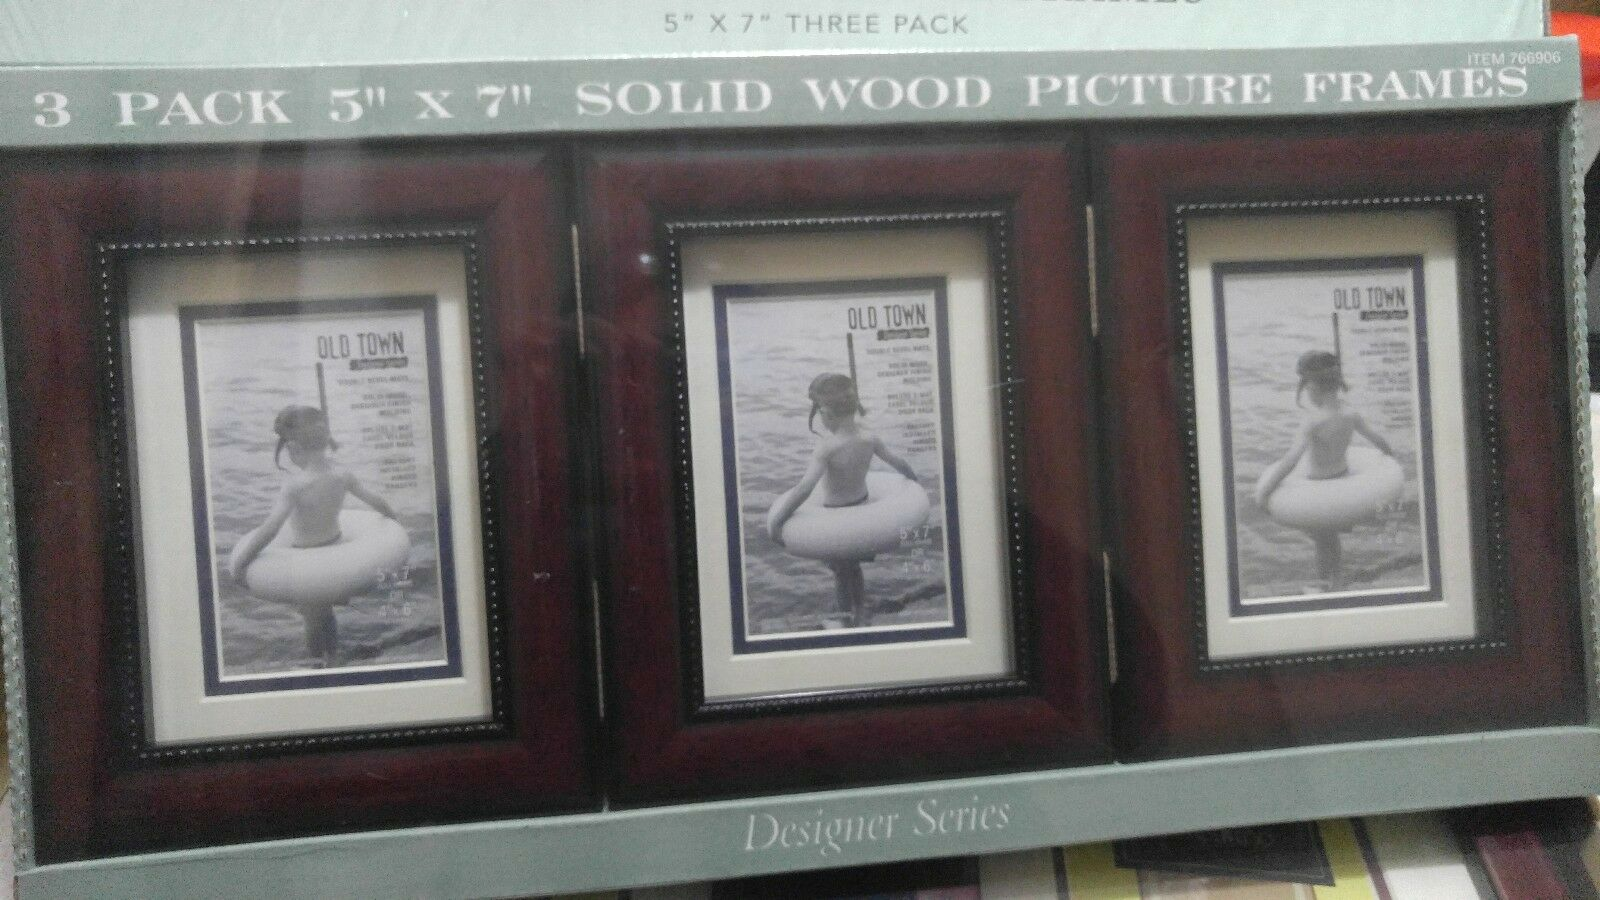 Old Town 3-pack Picture Frames Solid Wood DESIGNER Series 5x7 or 4x6 ...